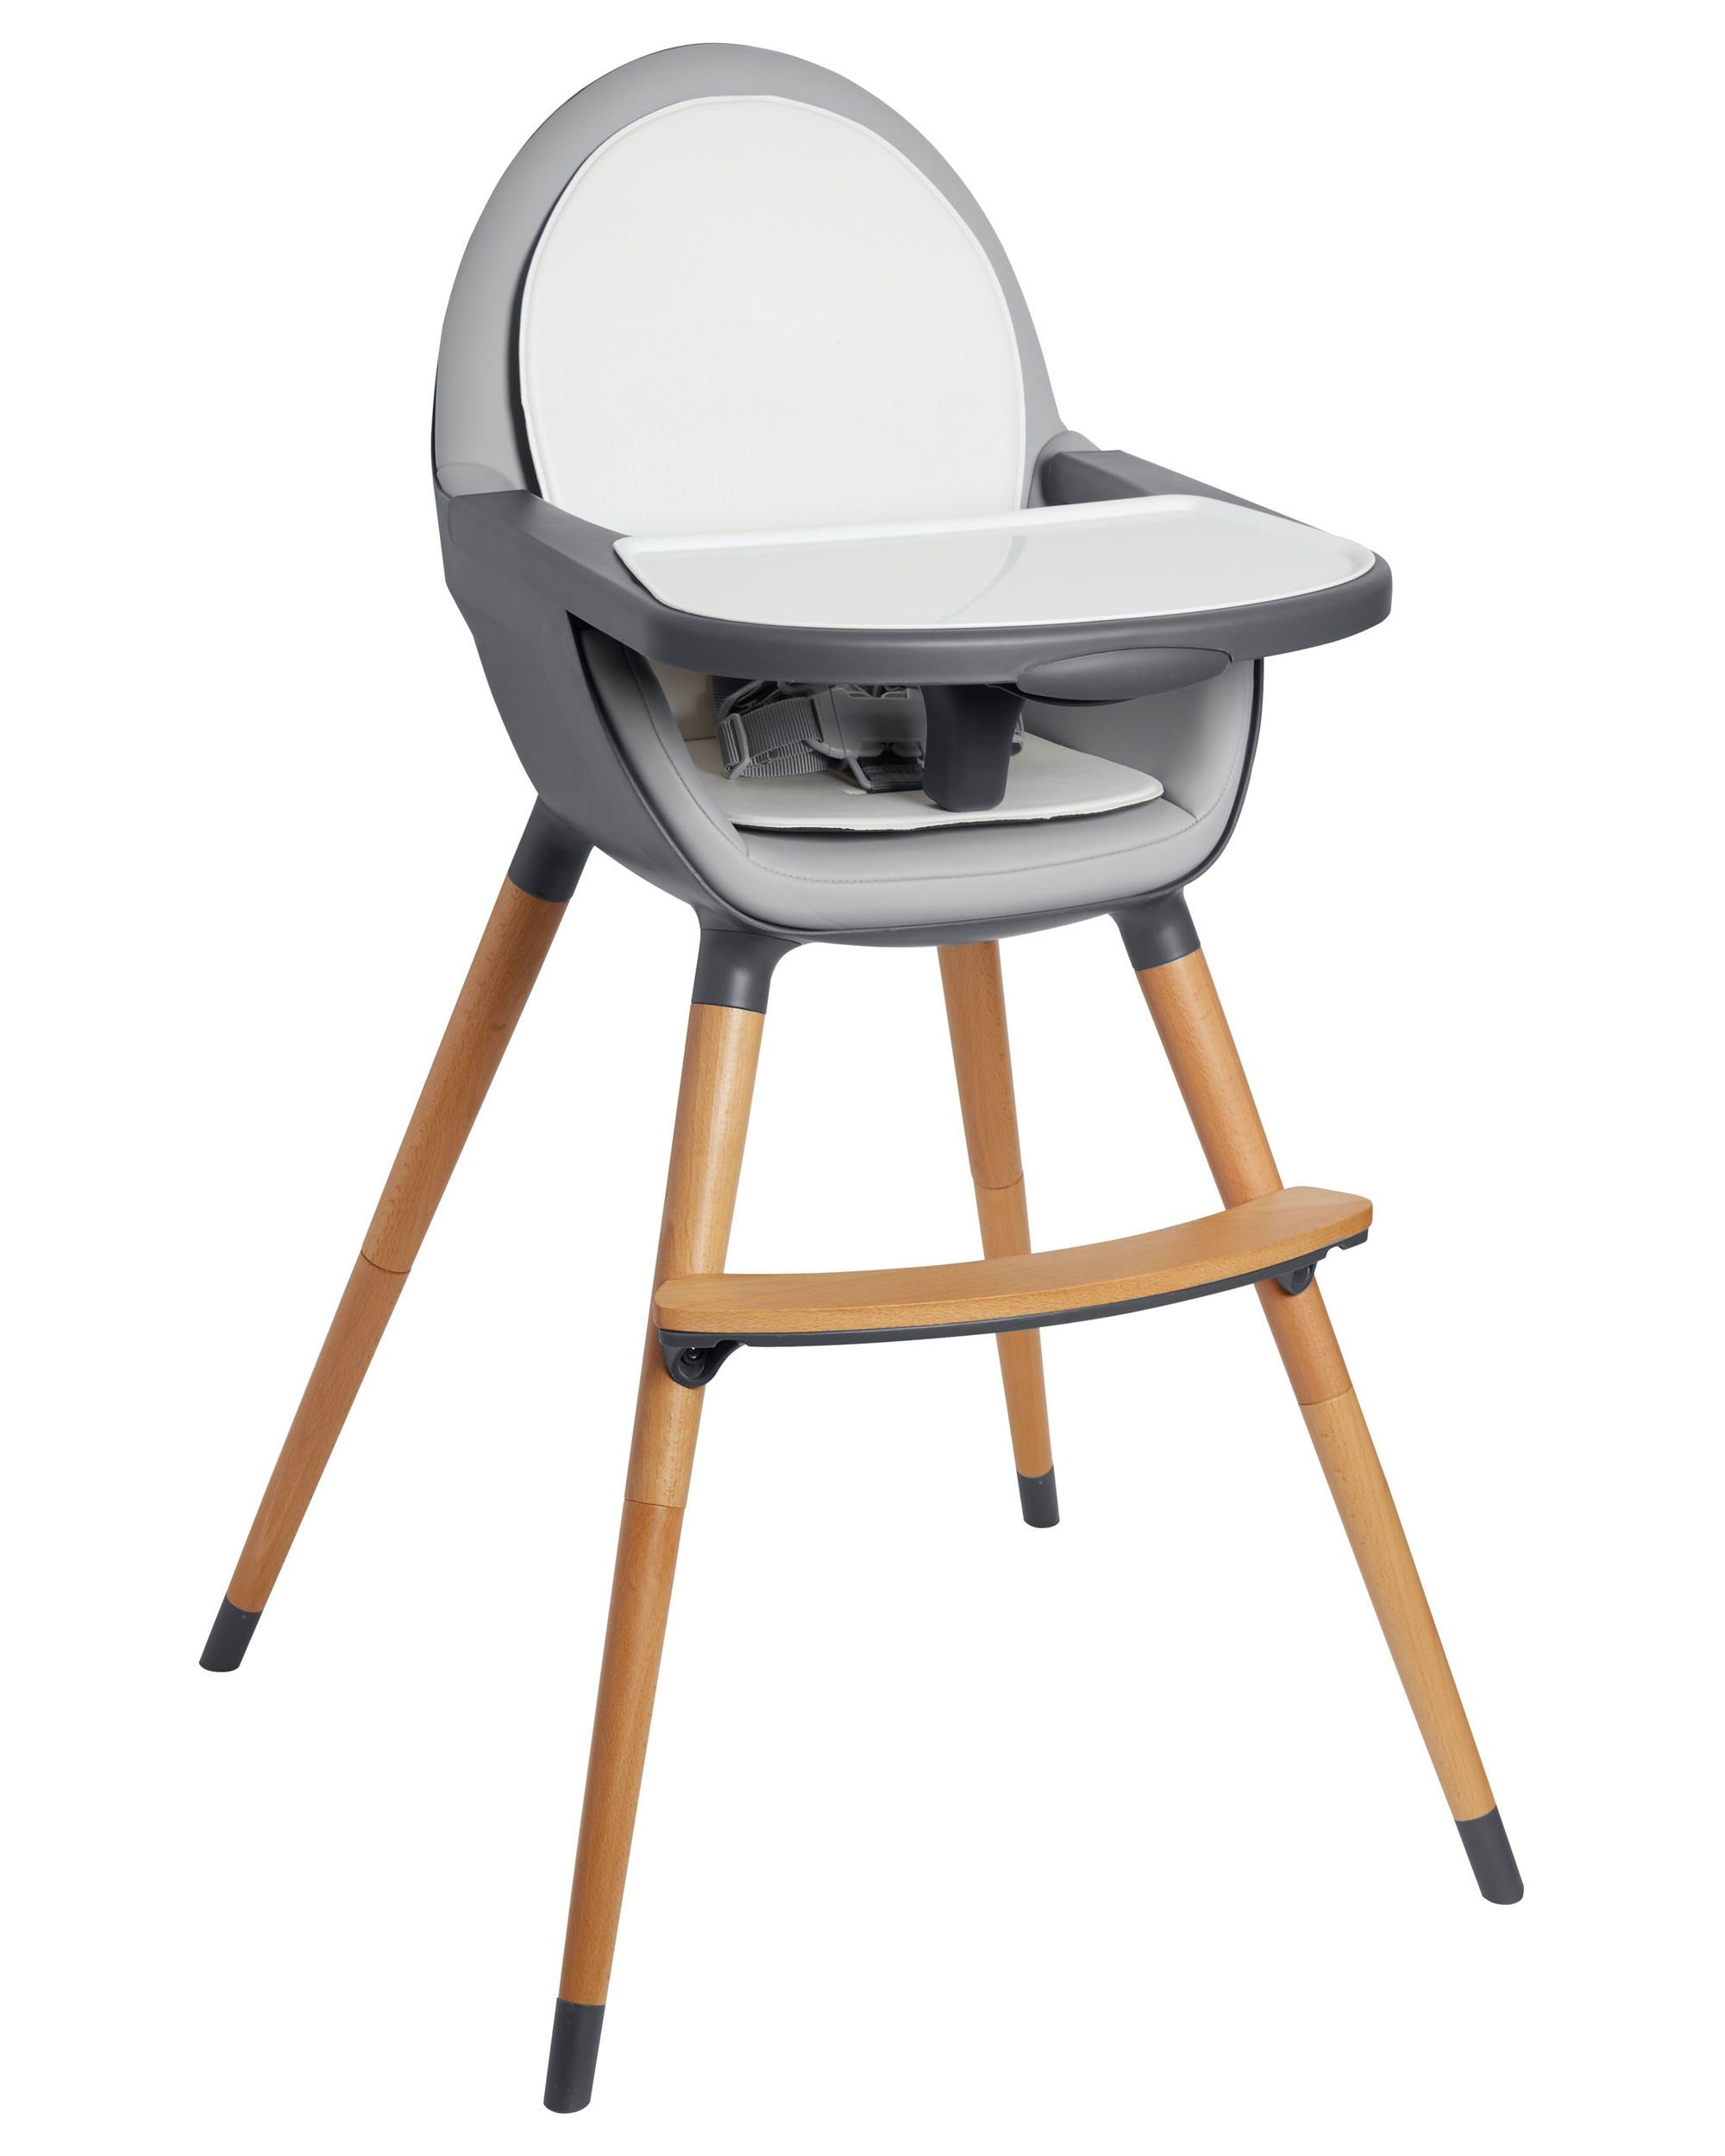 Easy Clean High Chair Tuo Convertible High Chair Skiphop With Clean Lines And